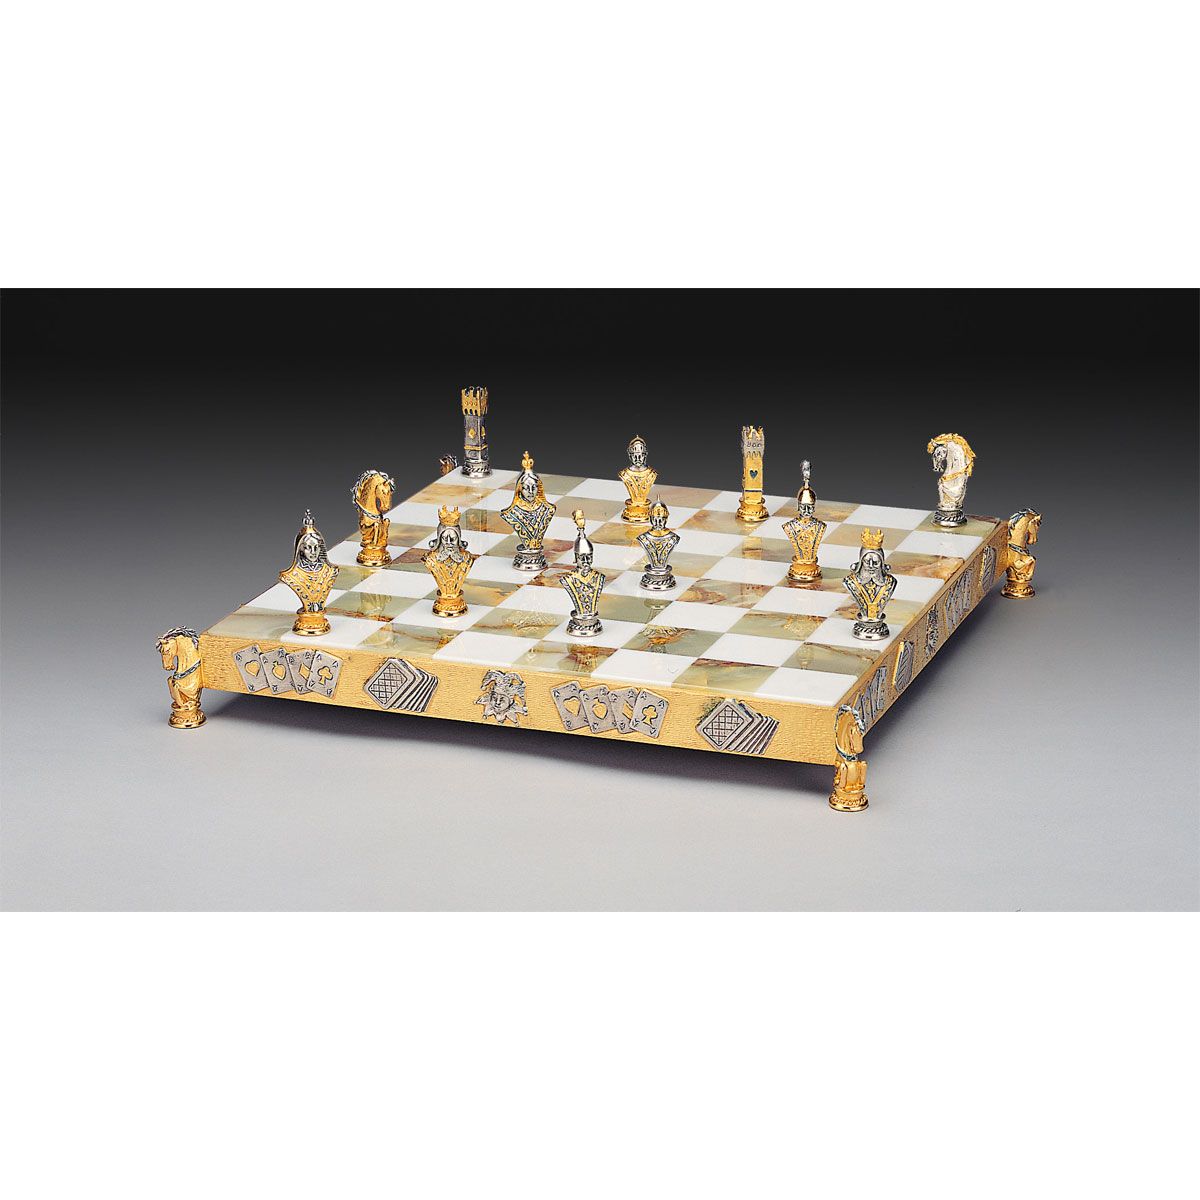 Poker Game Symbols Gold and Silver Themed Chess Set